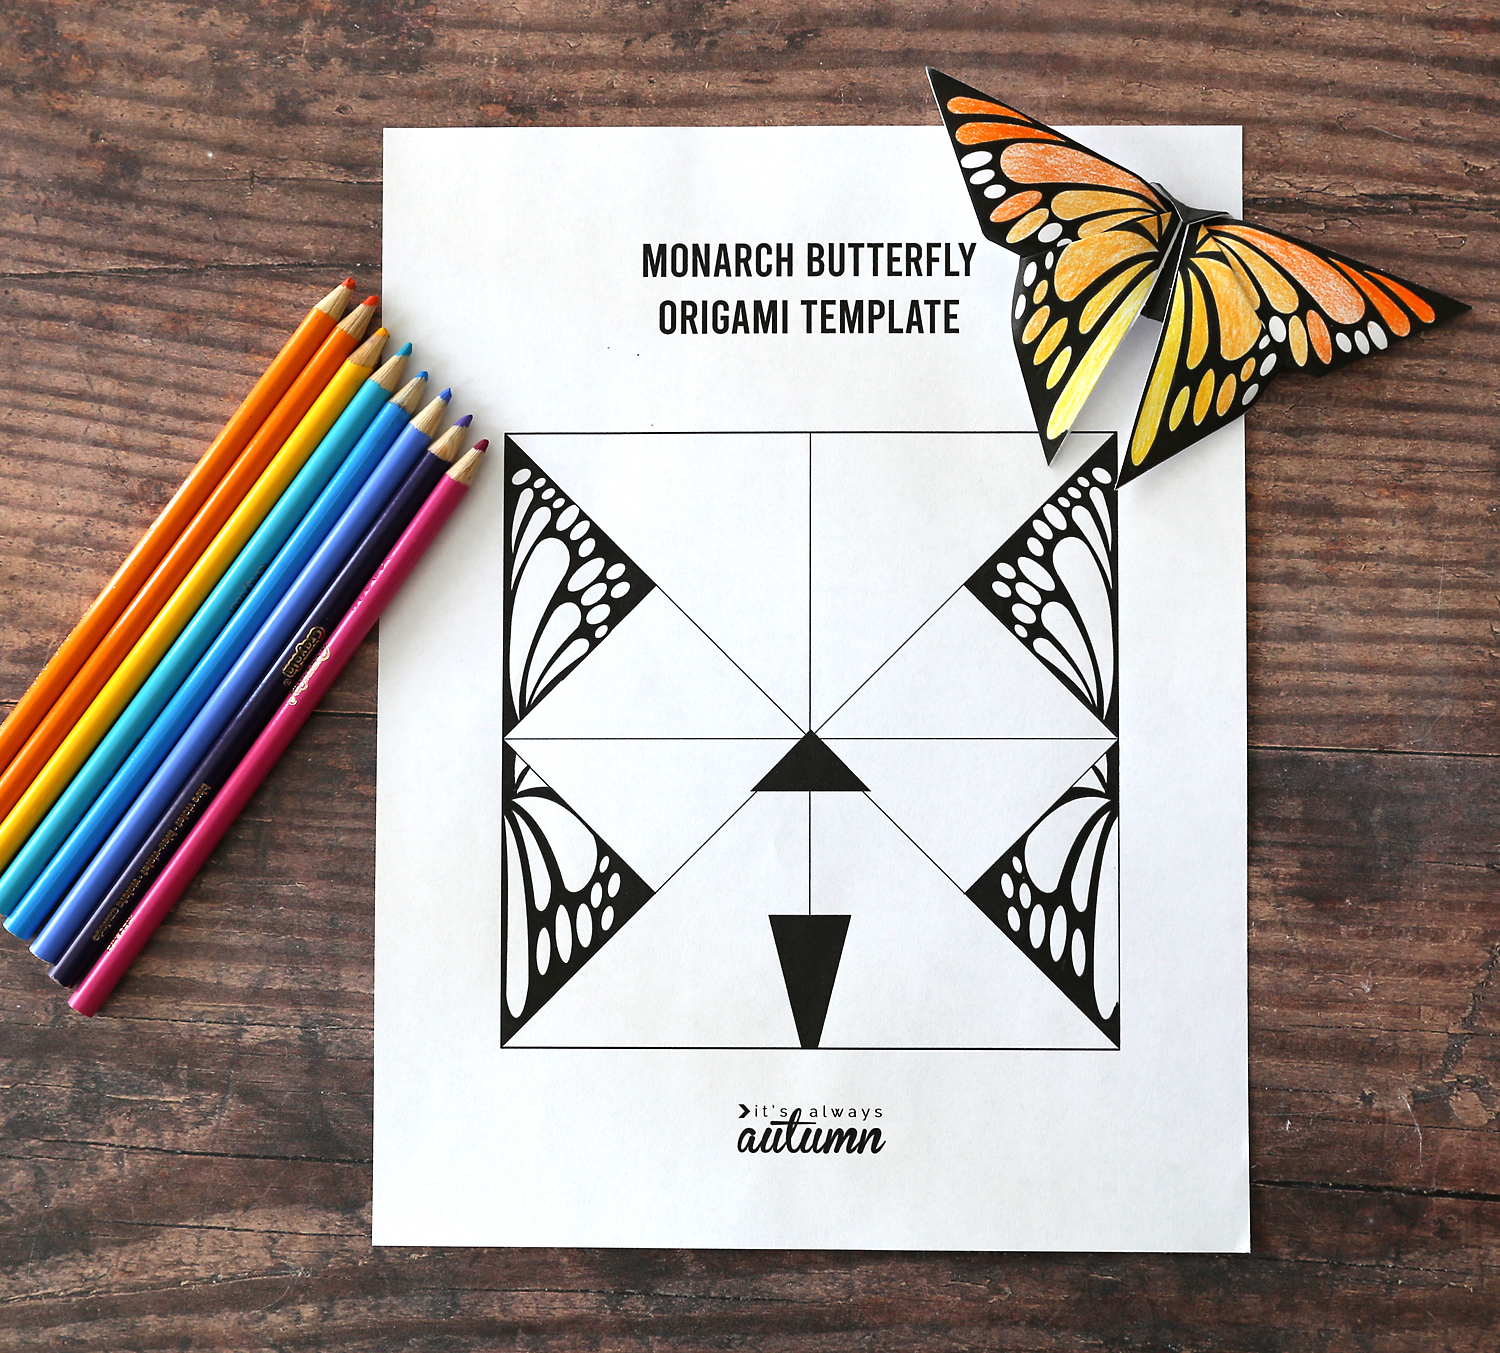 Monach butterfly origami template printed on white paper; folded origami butterfly; colored pencils